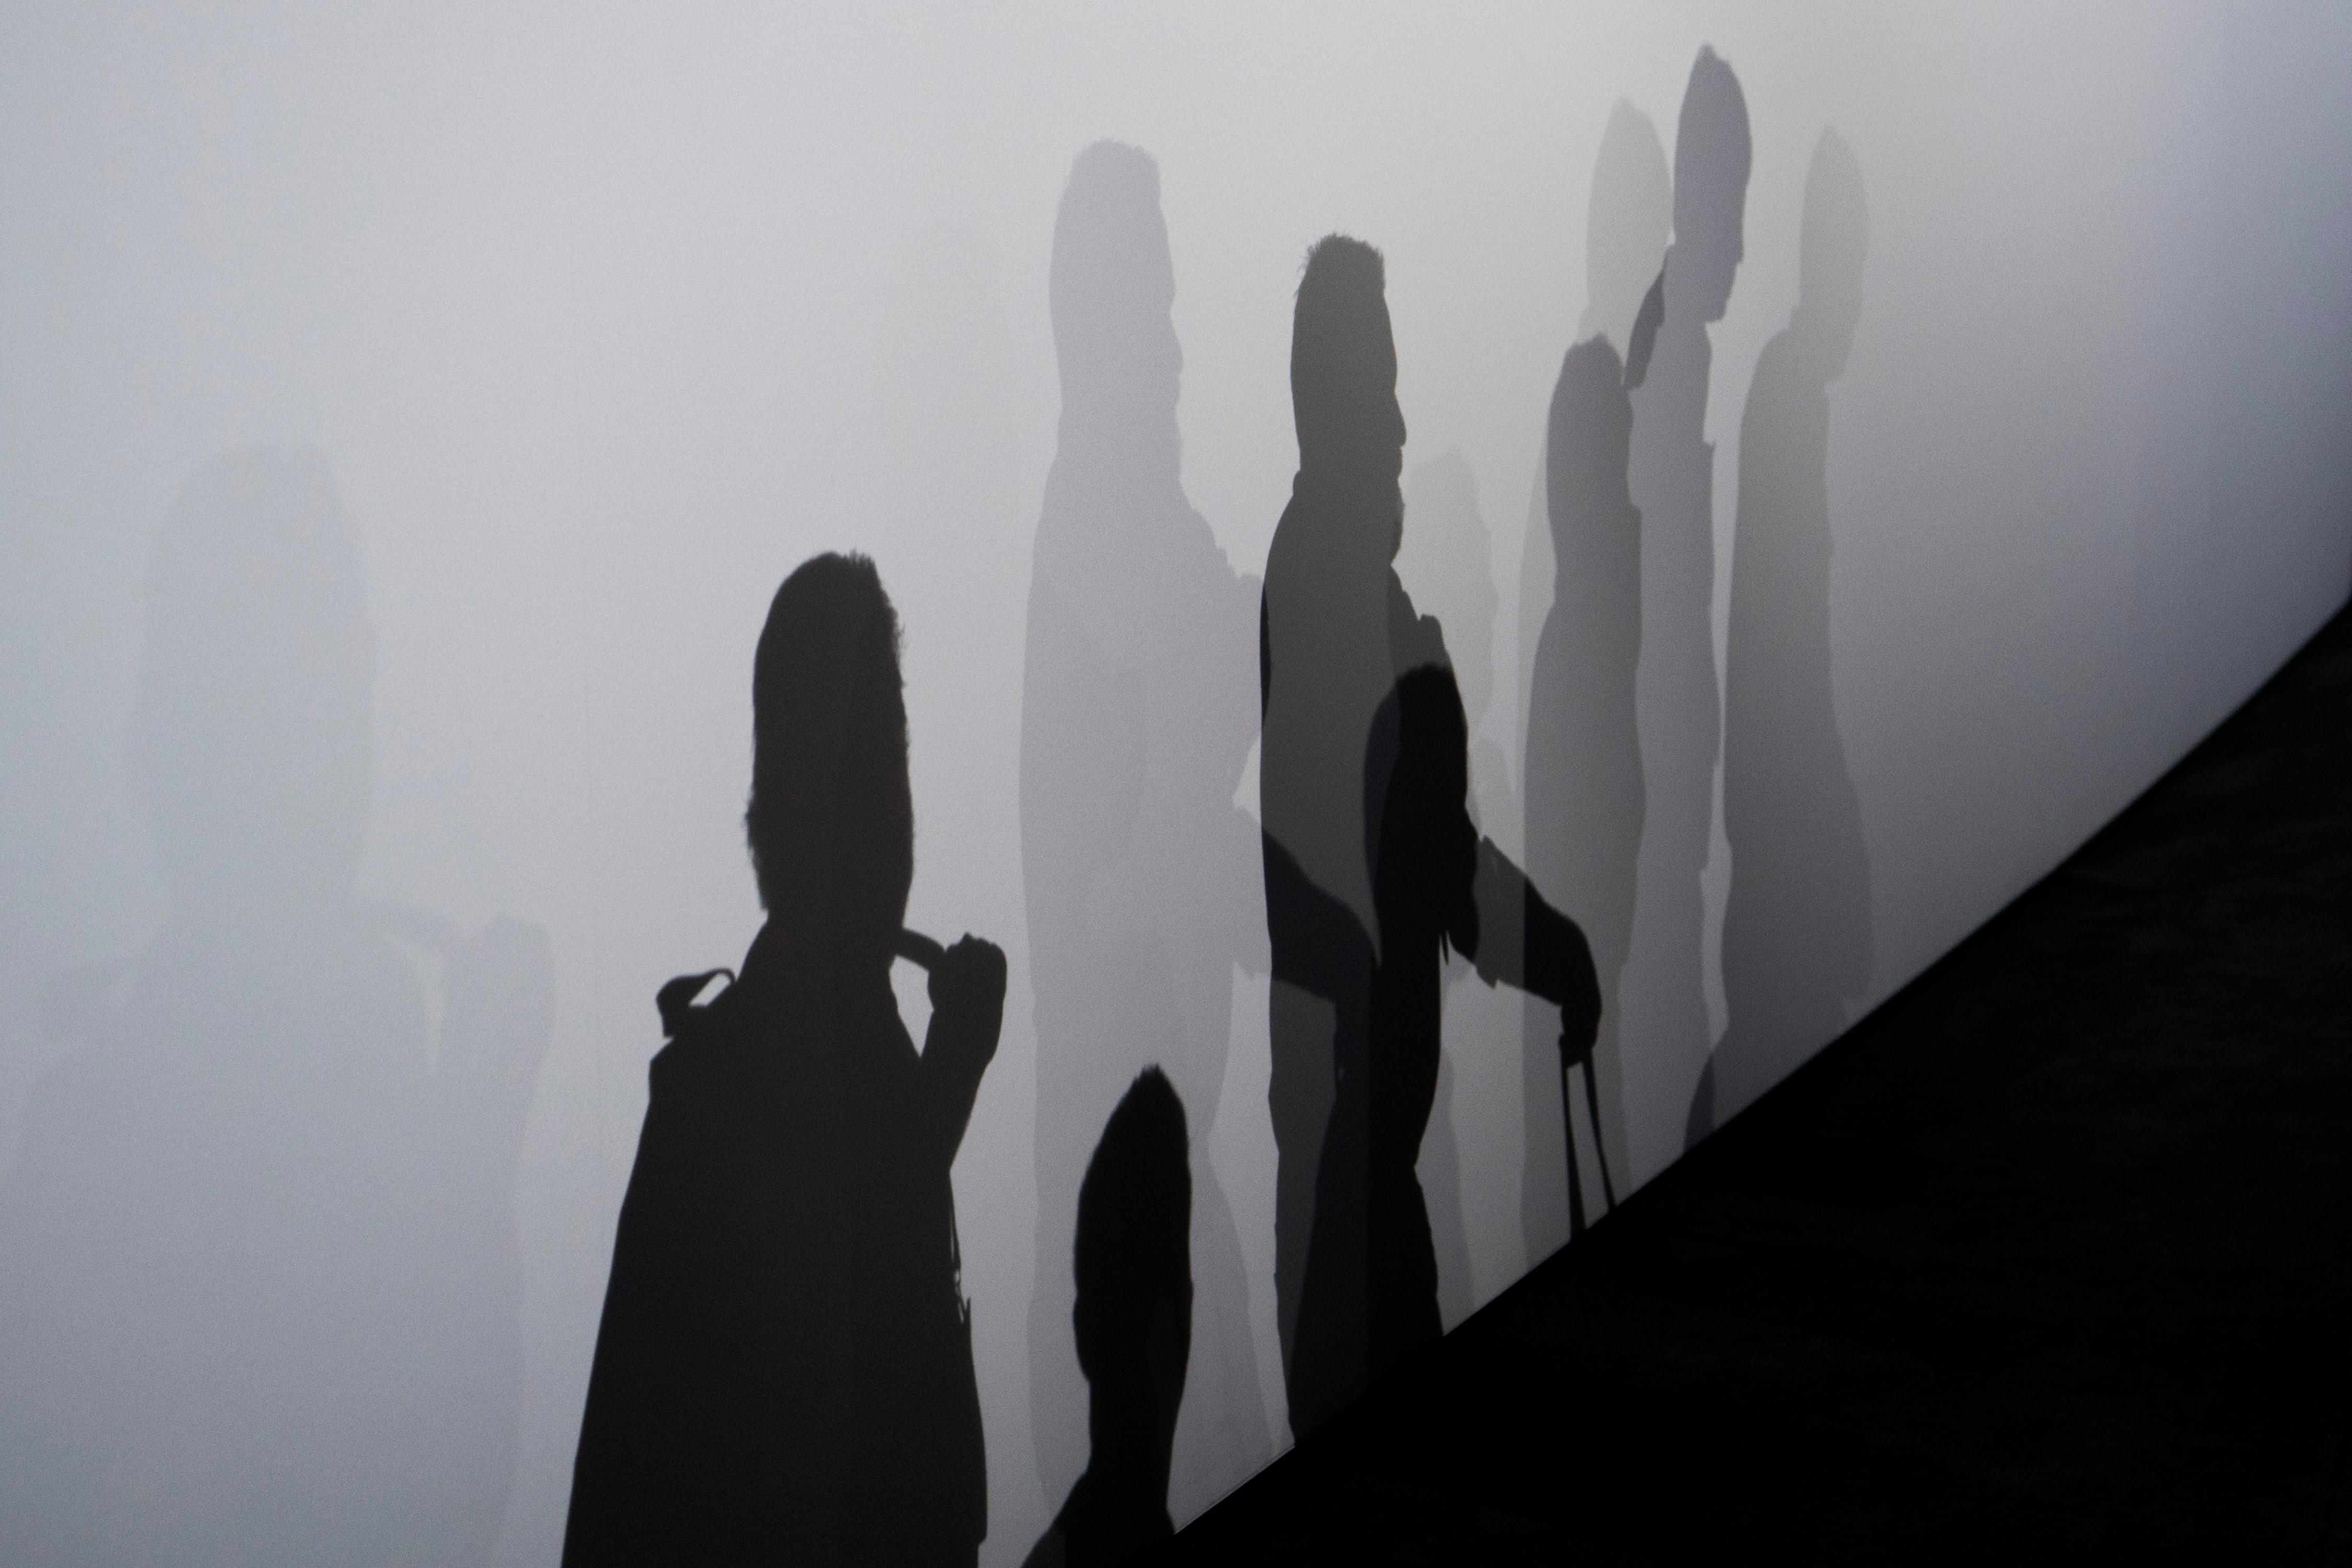 Attendees cast shadows on the wall during the second day of CES Wednesday, January 10, 2018, at the Las Vegas Convention Center. CREDIT: Sam Morris/Las Vegas News Bureau